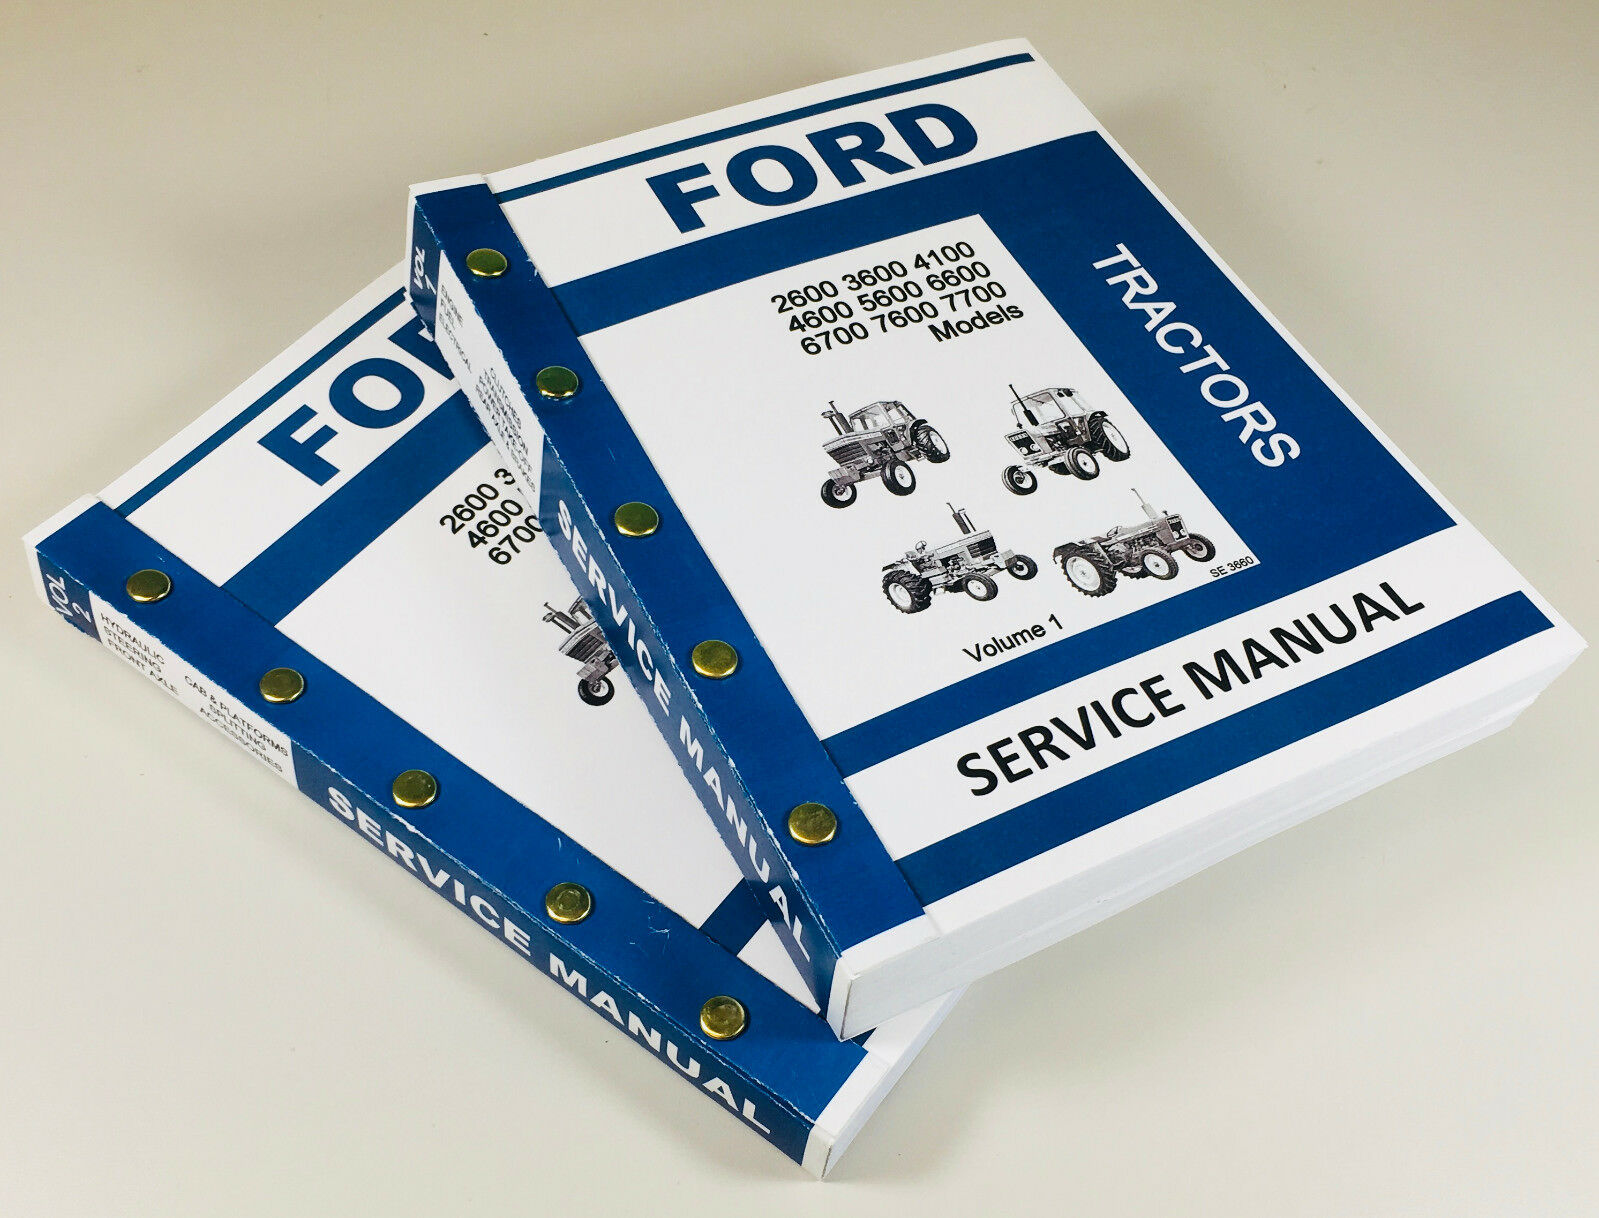 These comprehensive manuals includes